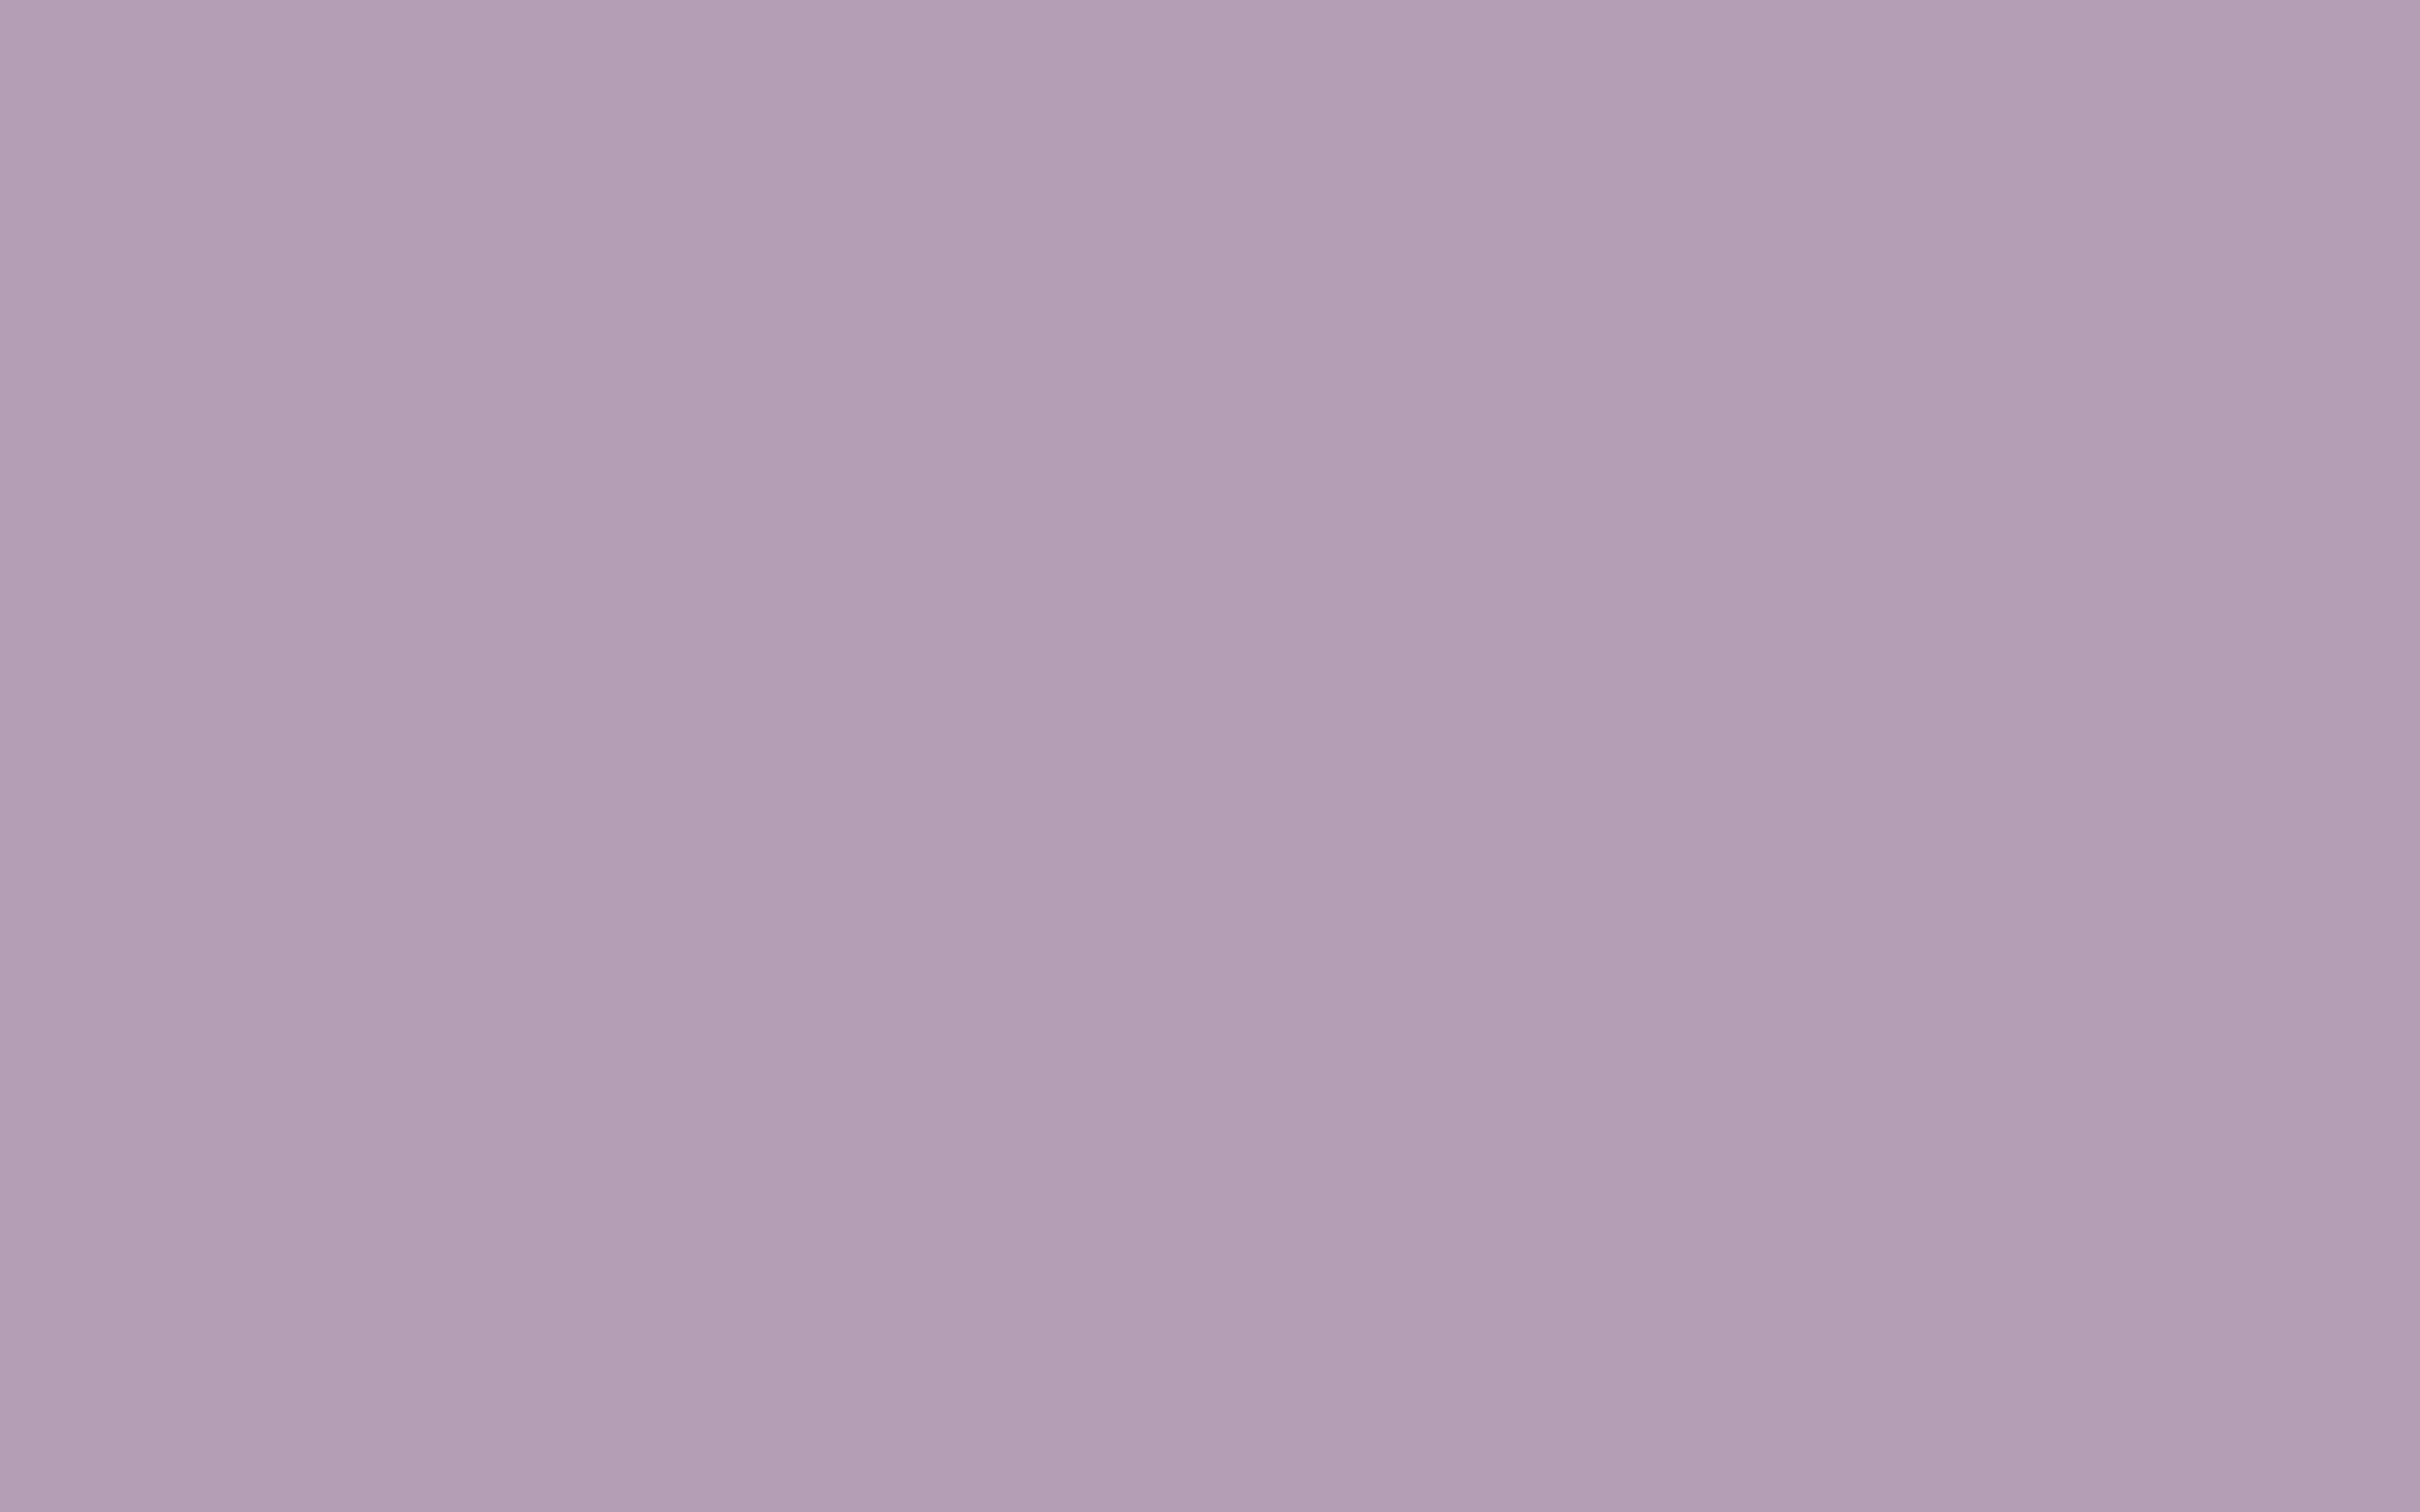 2880x1800 resolution Pastel Purple solid color background view 2880x1800